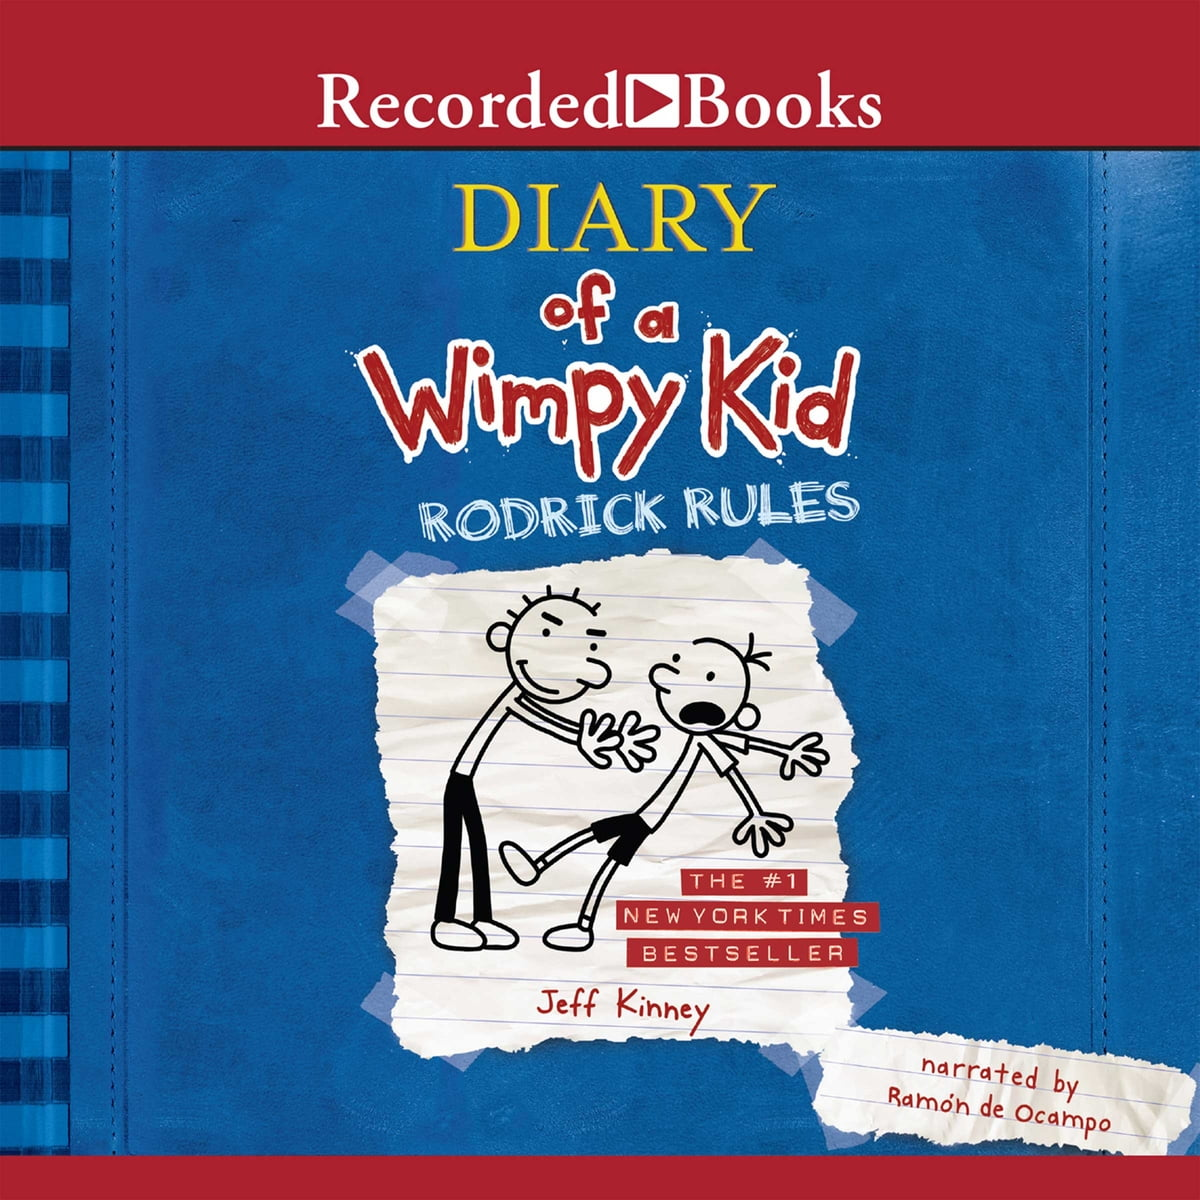 Diary of a wimpy kid rodrick rules audiobook by jeff kinney diary of a wimpy kid rodrick rules audiobook by jeff kinney 9781440708862 rakuten kobo solutioingenieria Choice Image